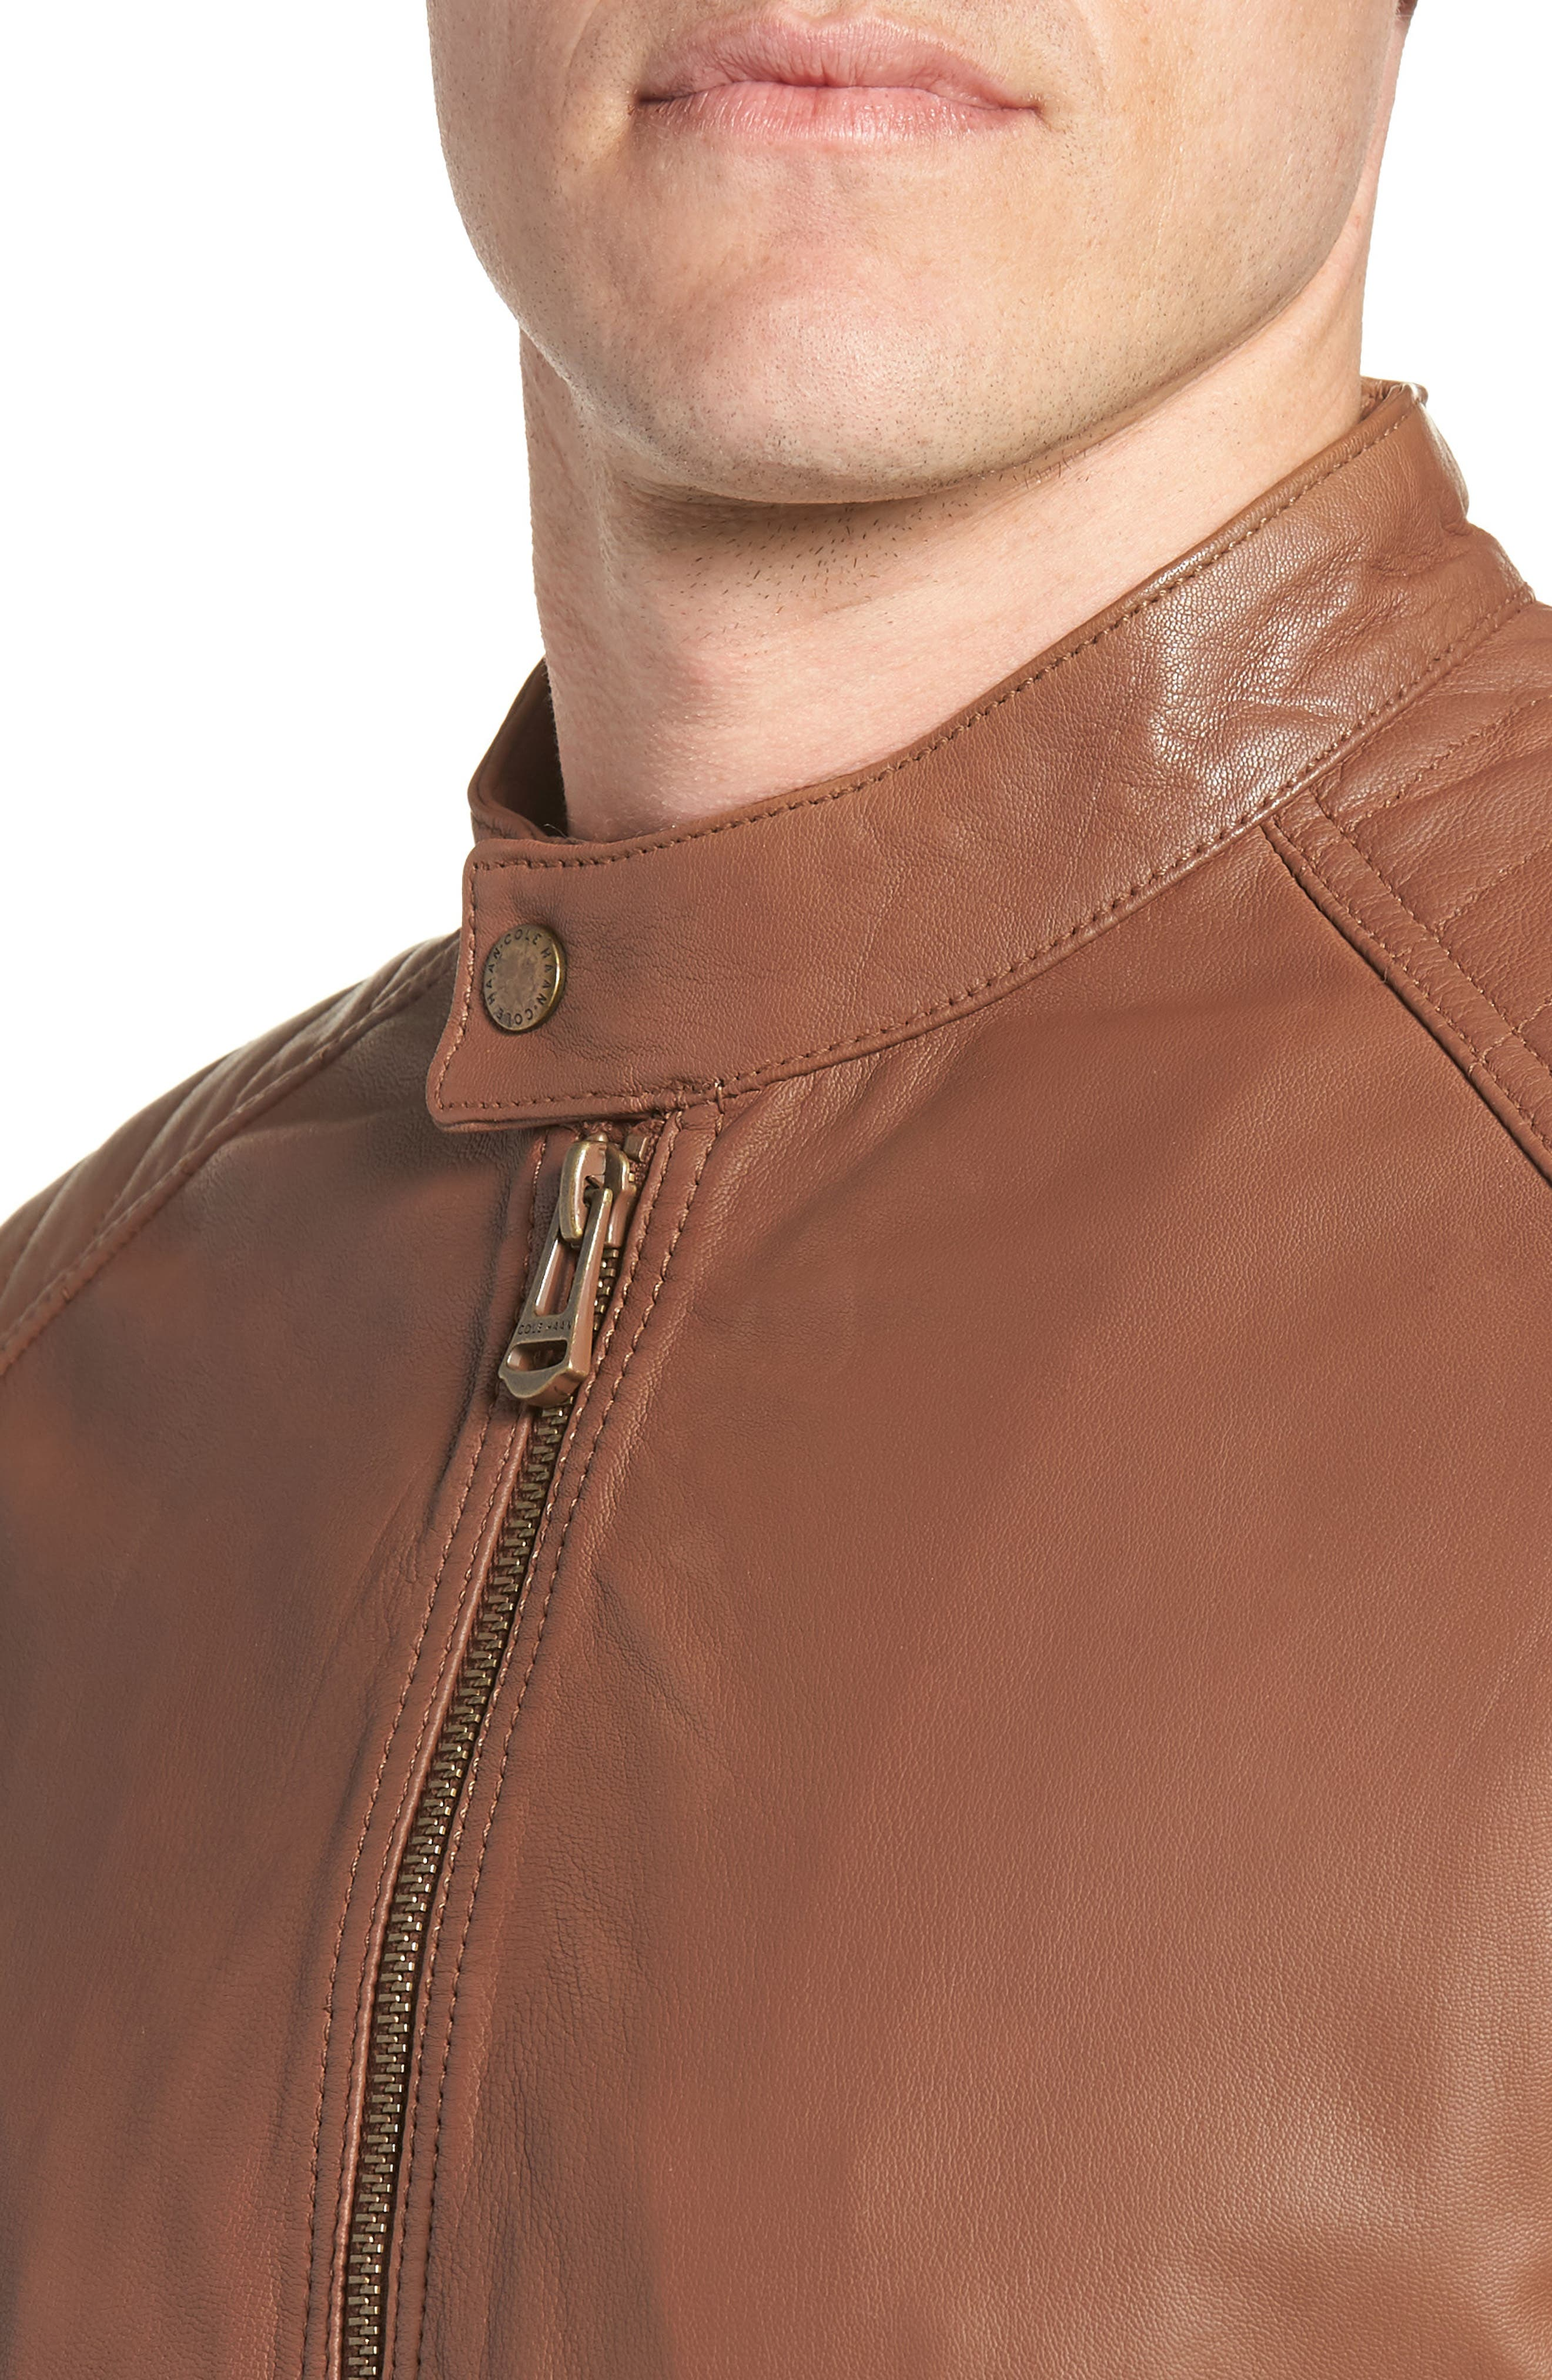 Washed Leather Moto Jacket,                             Alternate thumbnail 4, color,                             Cognac